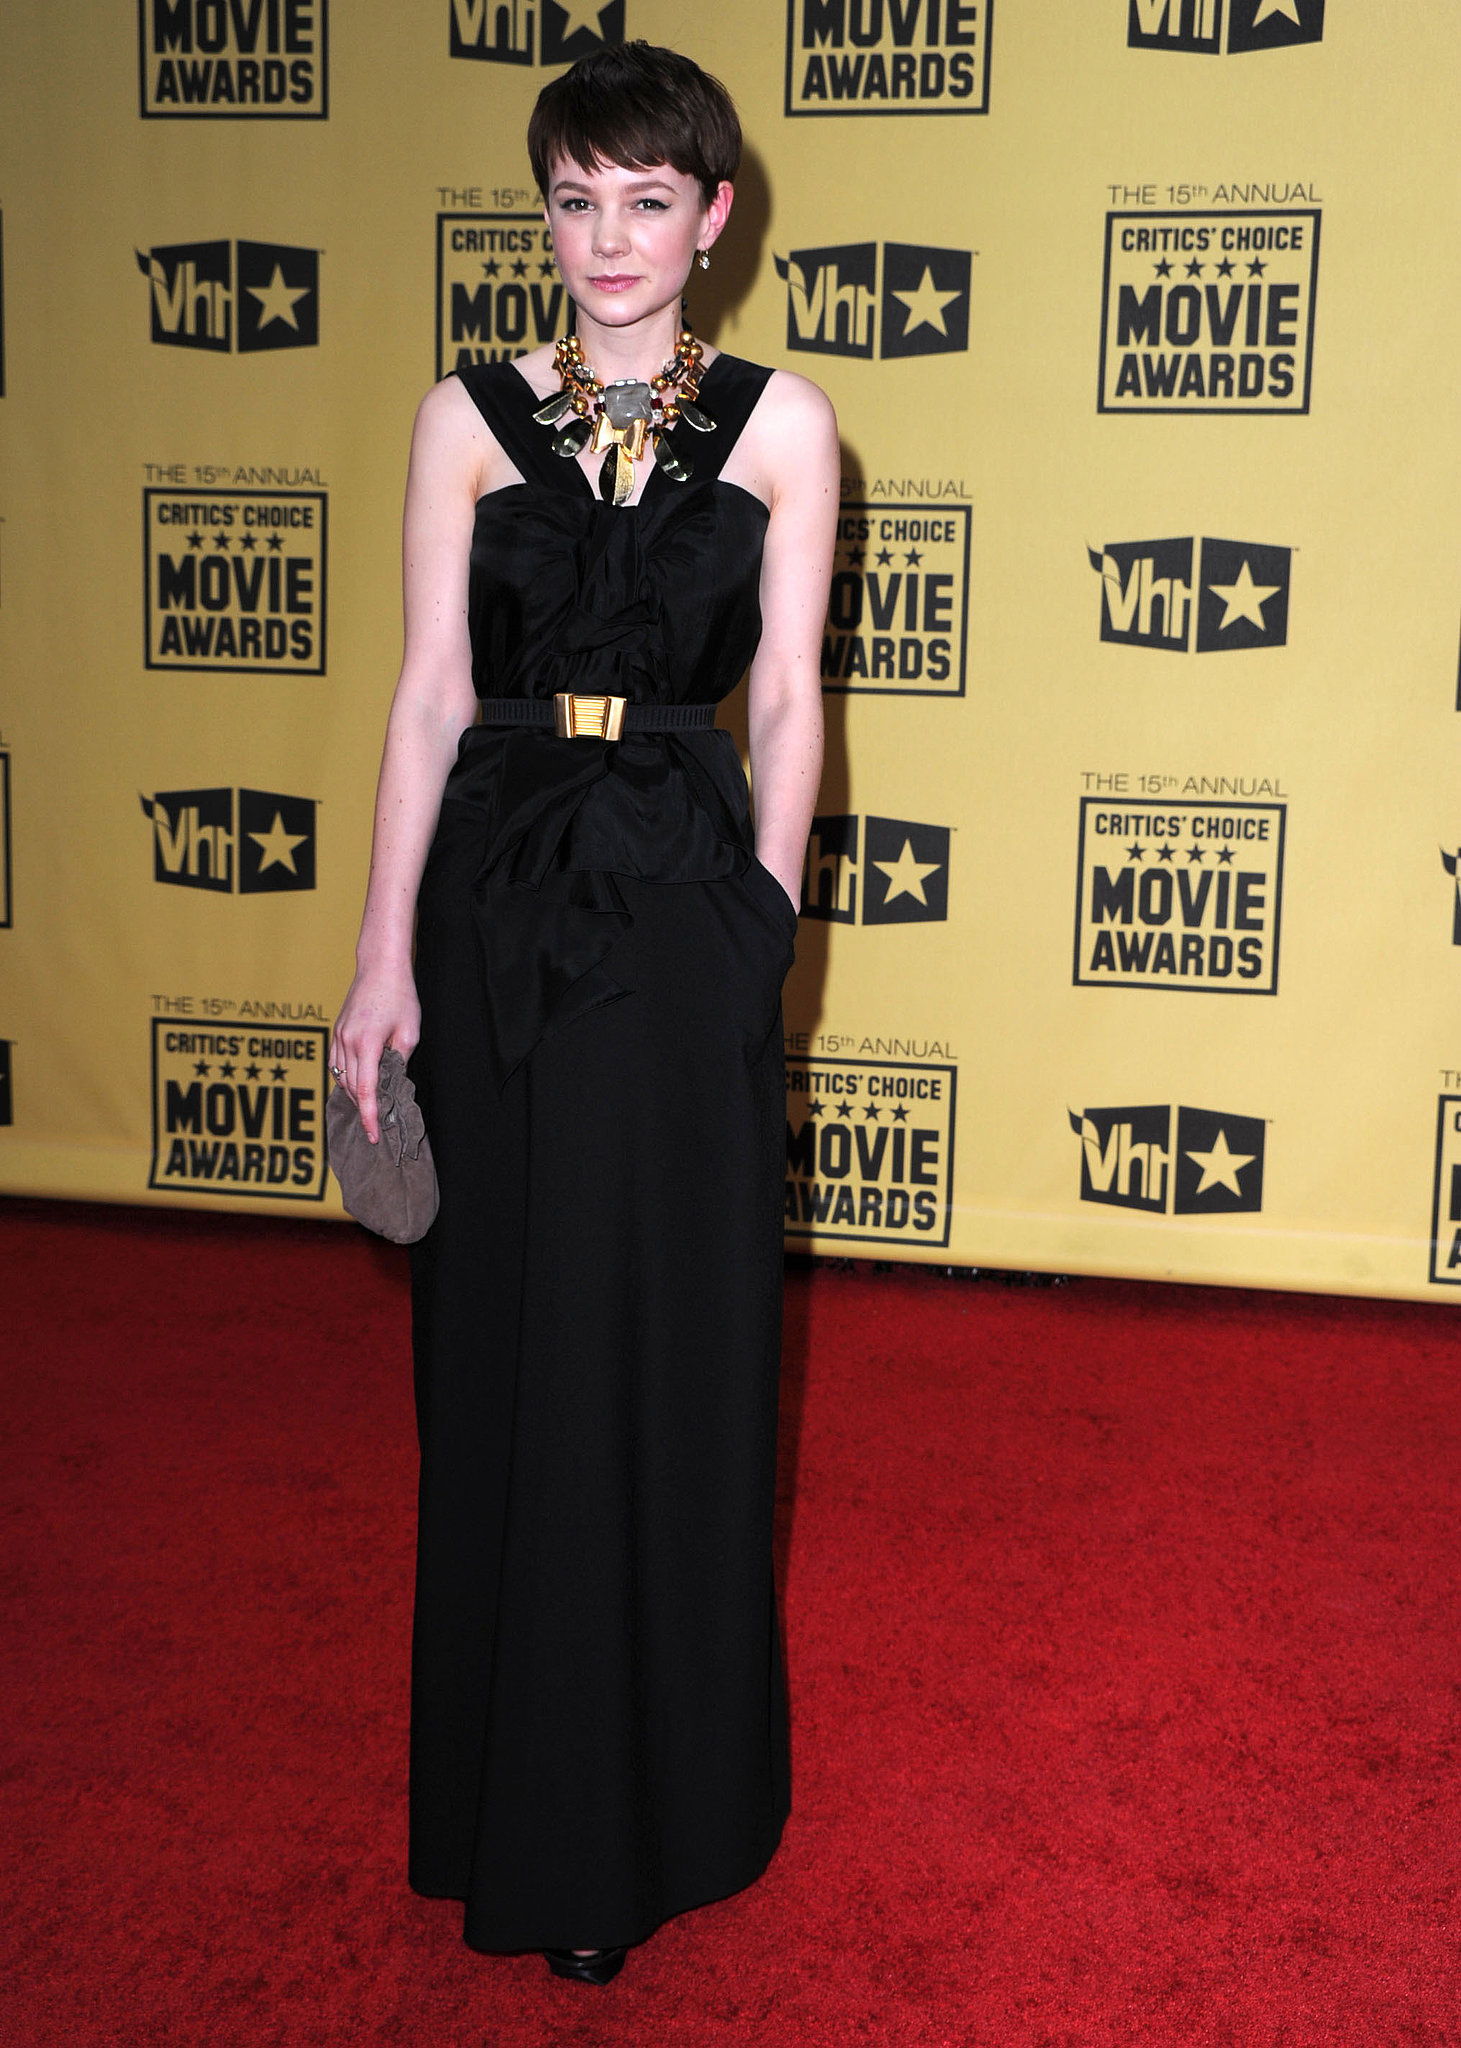 Carey Mulligan in a Long Black Gown at the 2010 Critics' Choice Awards